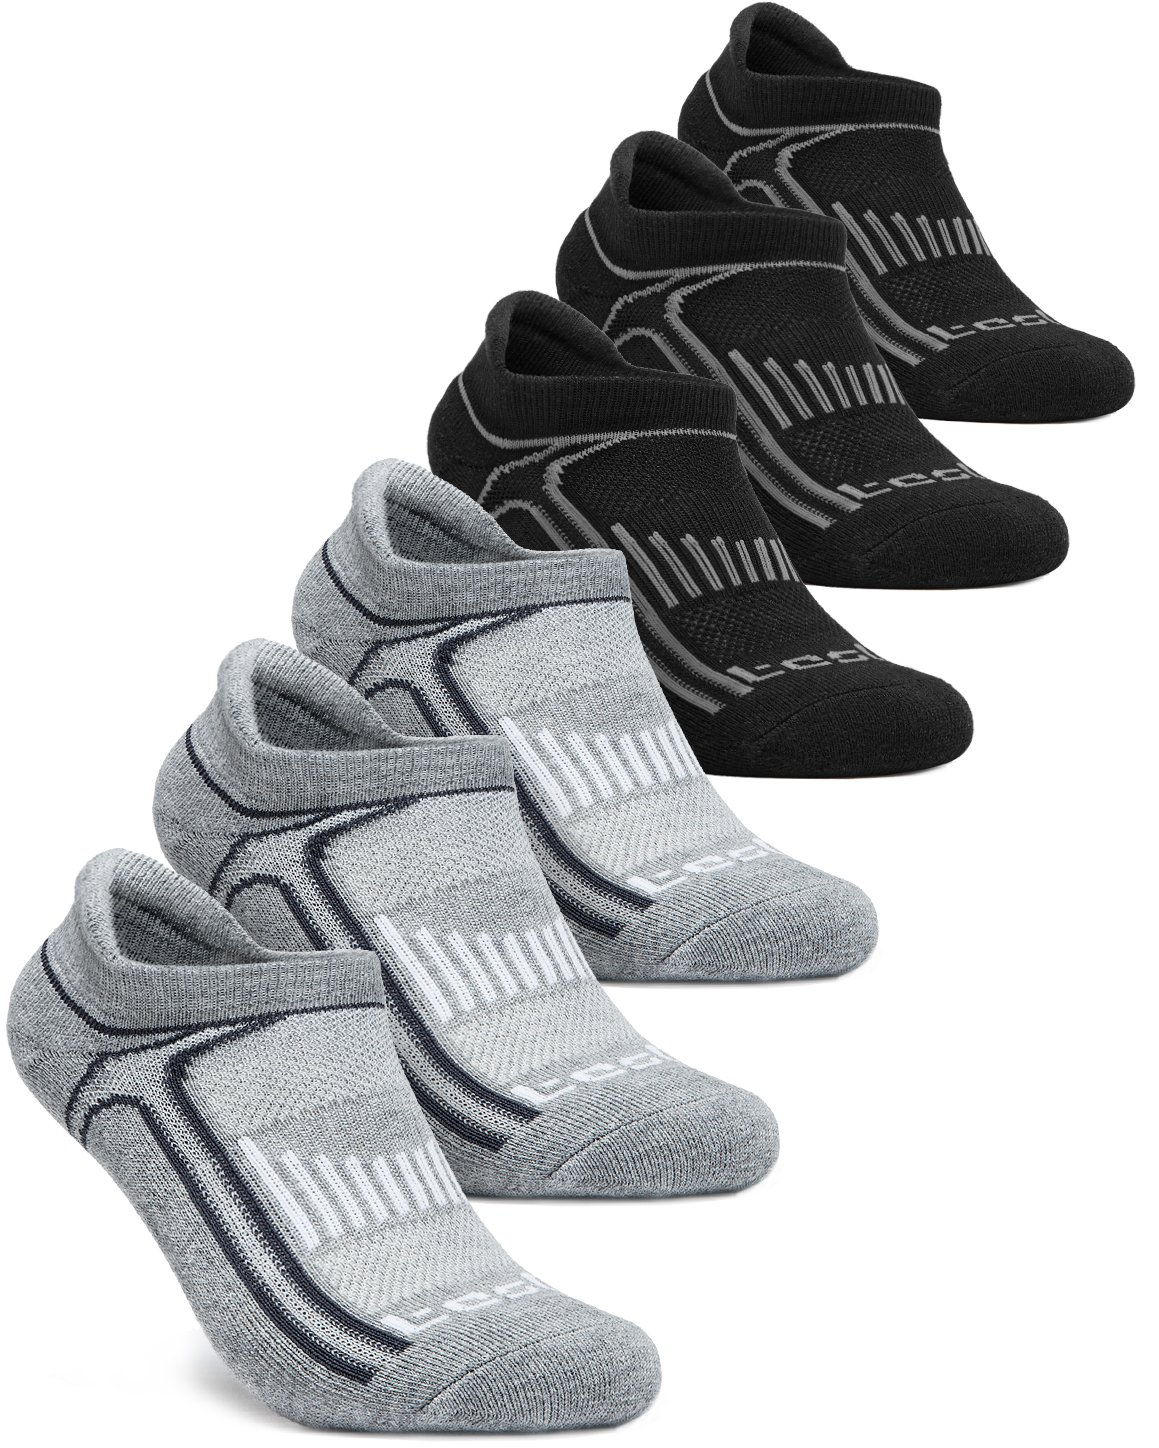 Tesla TM-MZS05-DGKZ_Large Men's 6-Pairs Atheltic No Show Socks Cushioned Comfort w Mesh MZS05 by Tesla